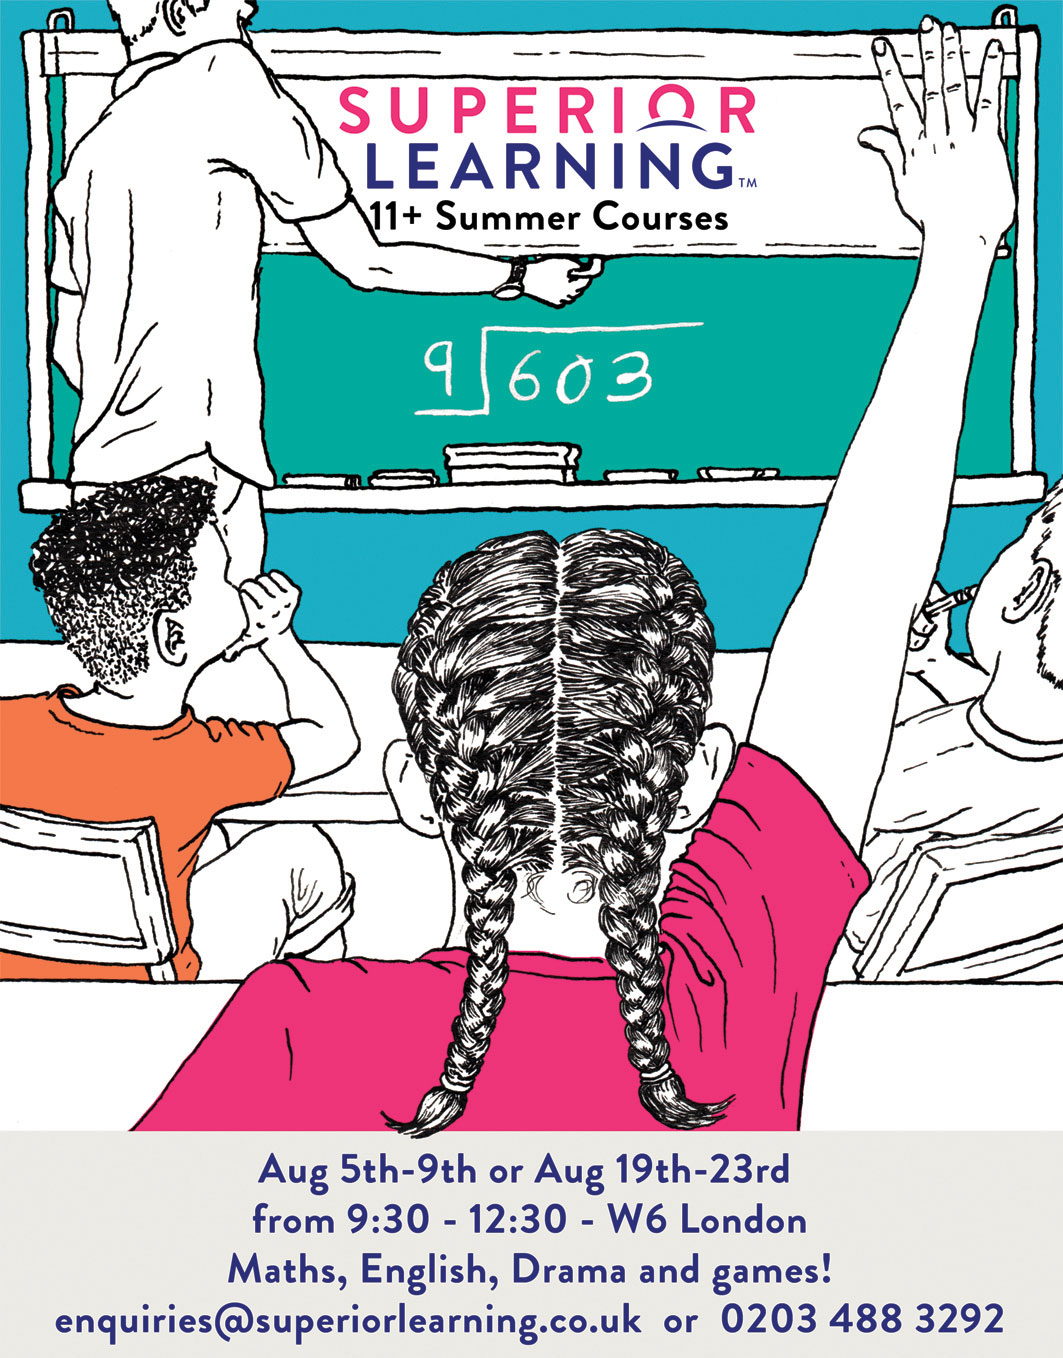 Superior Learning 11plus Summer Courses